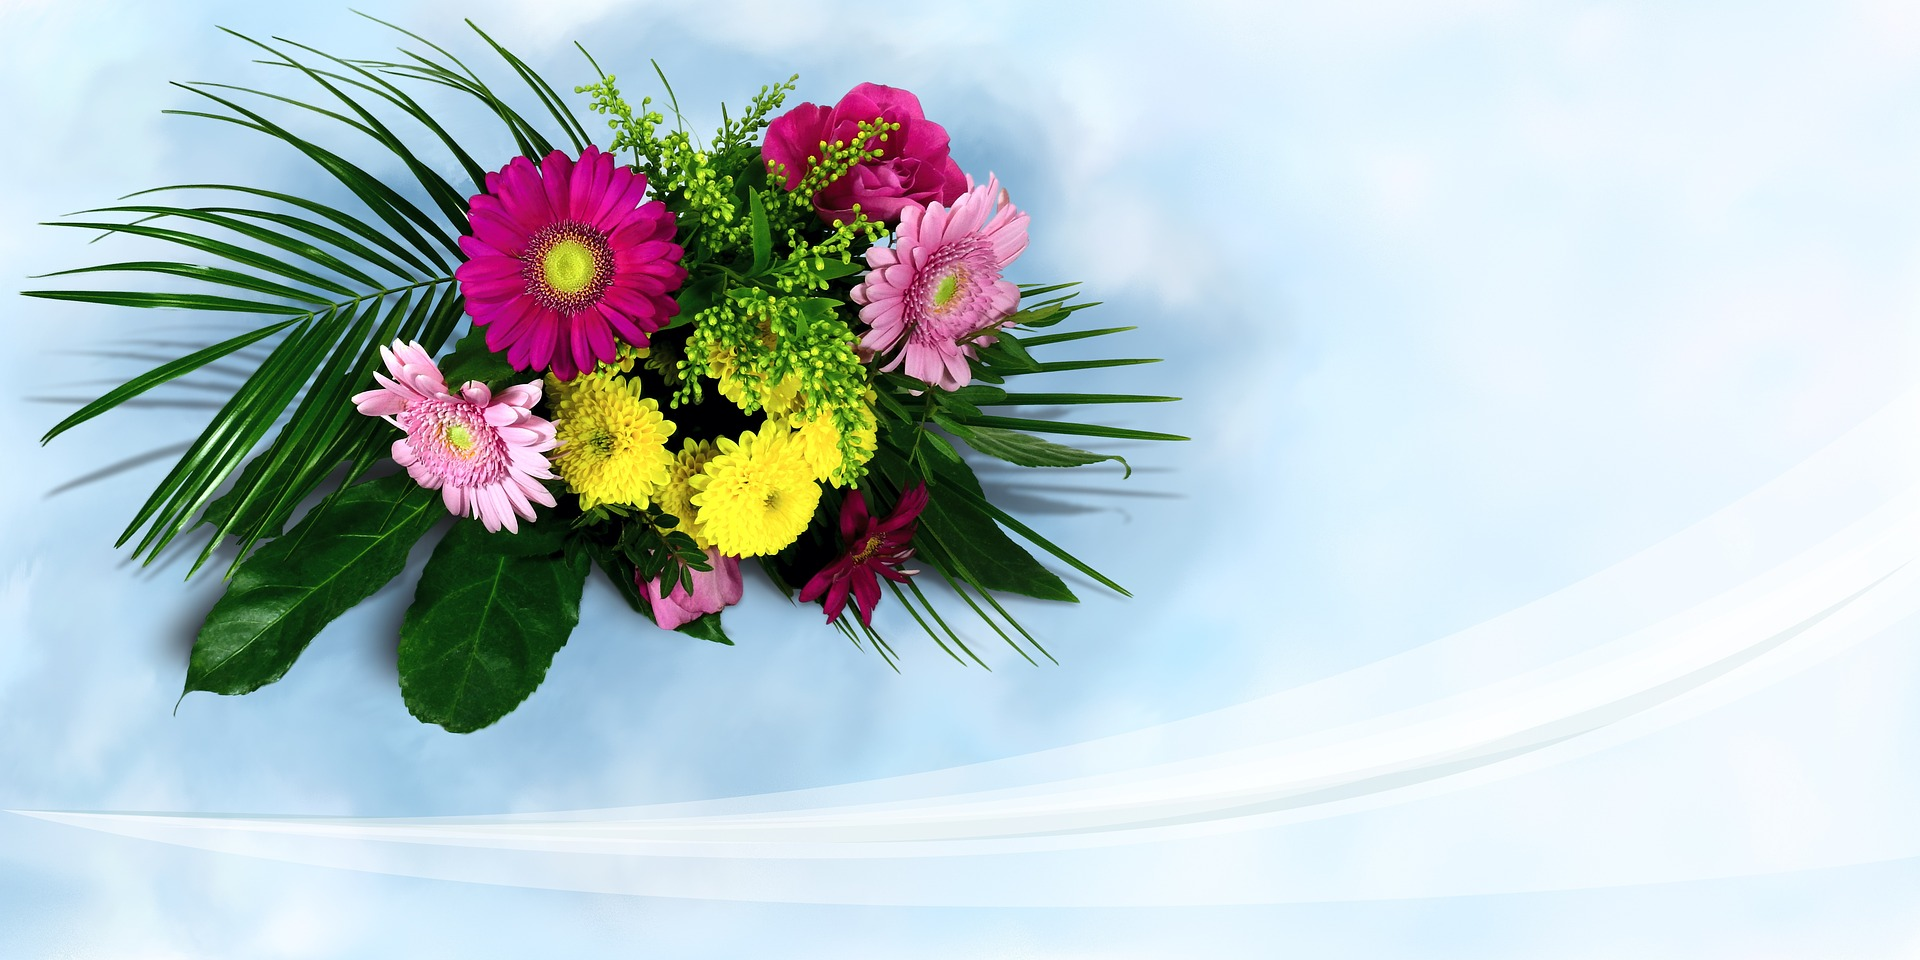 bouquet-of-flowers-1399218_1920